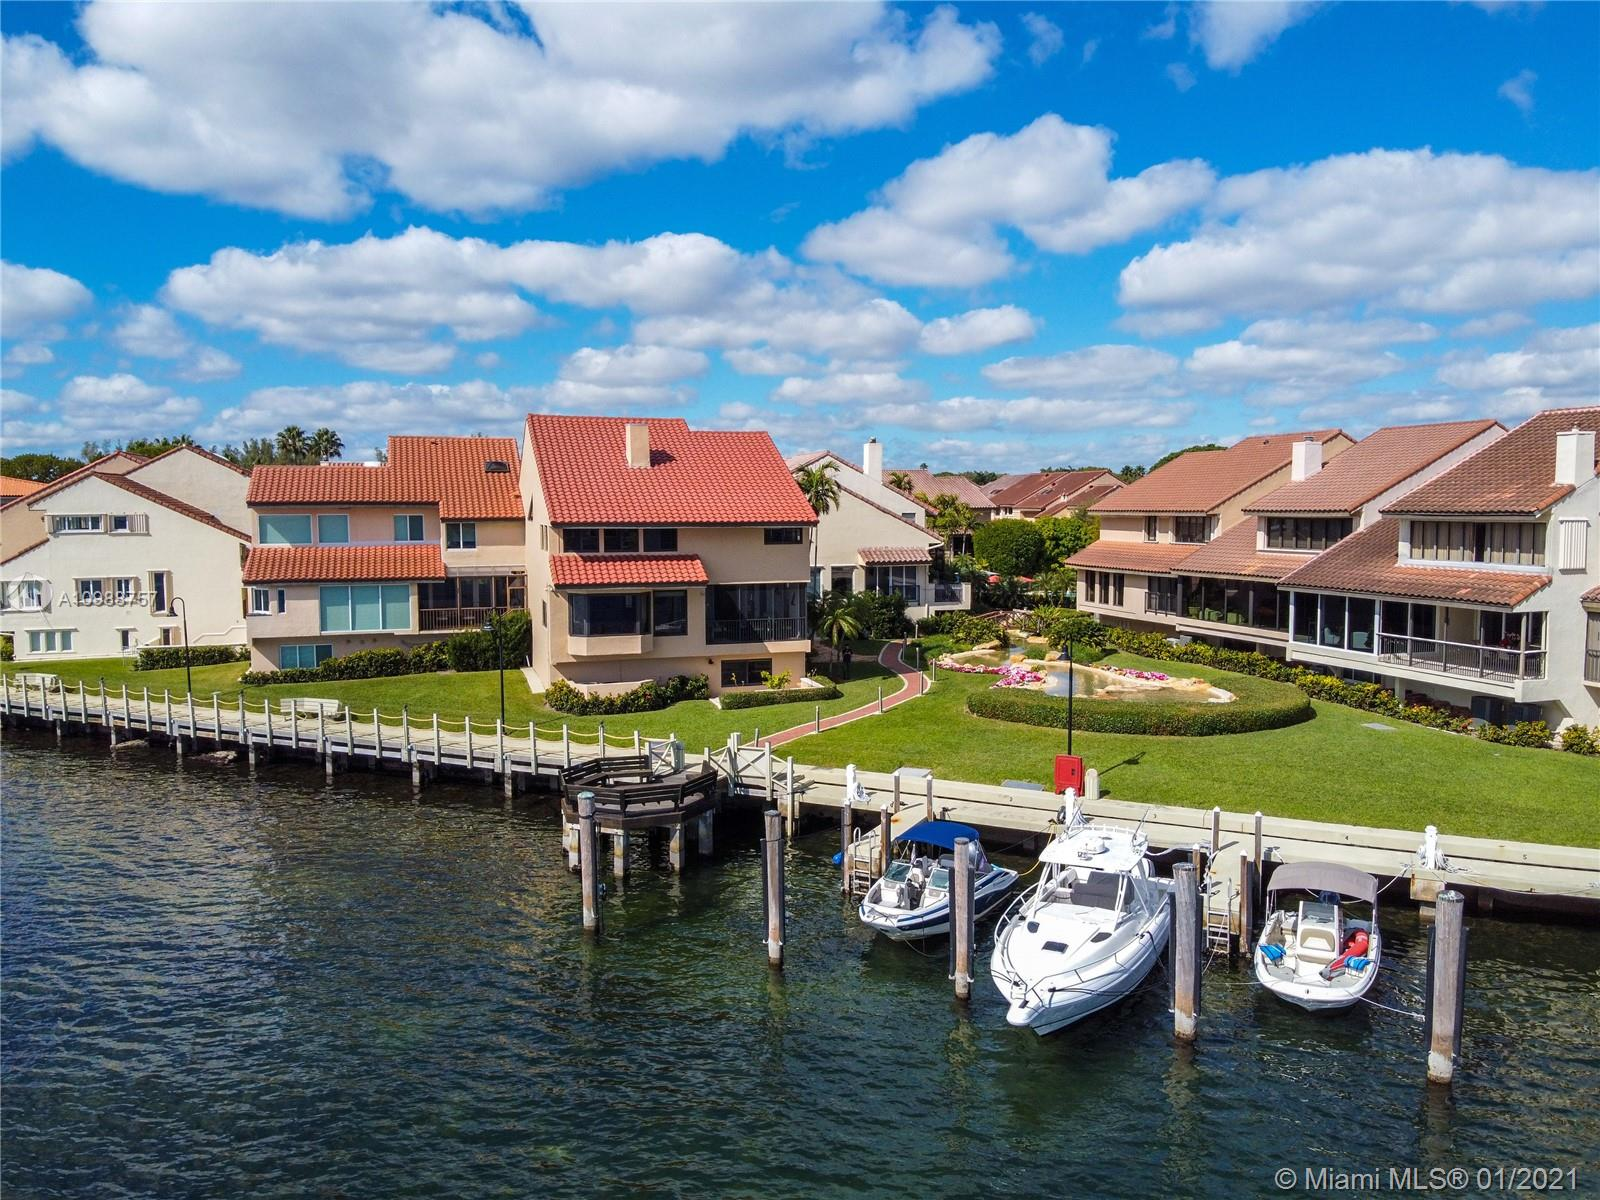 Get ready to be amazed by this beautiful waterfront townhome, with a dock, in the one-and-only gated community of L'Hermitage in Coconut Grove. Enjoy the expansive water views of Biscayne Bay and the Atlantic Ocean while sitting on your terrace or by gazing through the large bay windows inside the comfort of your own living room. This 4BR/4.5BA villa has been completely renovated inside and out, and includes full impact doors & windows, along with a 2018 roof. Wolf & Sub-Zero appliances in the kitchen. Coffered ceilings with custom shelves and cabinets in the living room. Bar w/ wine cooler & ice maker compliments the large living area with the Hemingway den. Elevator w/ modernized cab and equipment. 2 private outdoor lounge areas. Garage plus carport. Includes exclusive use of boat slip.